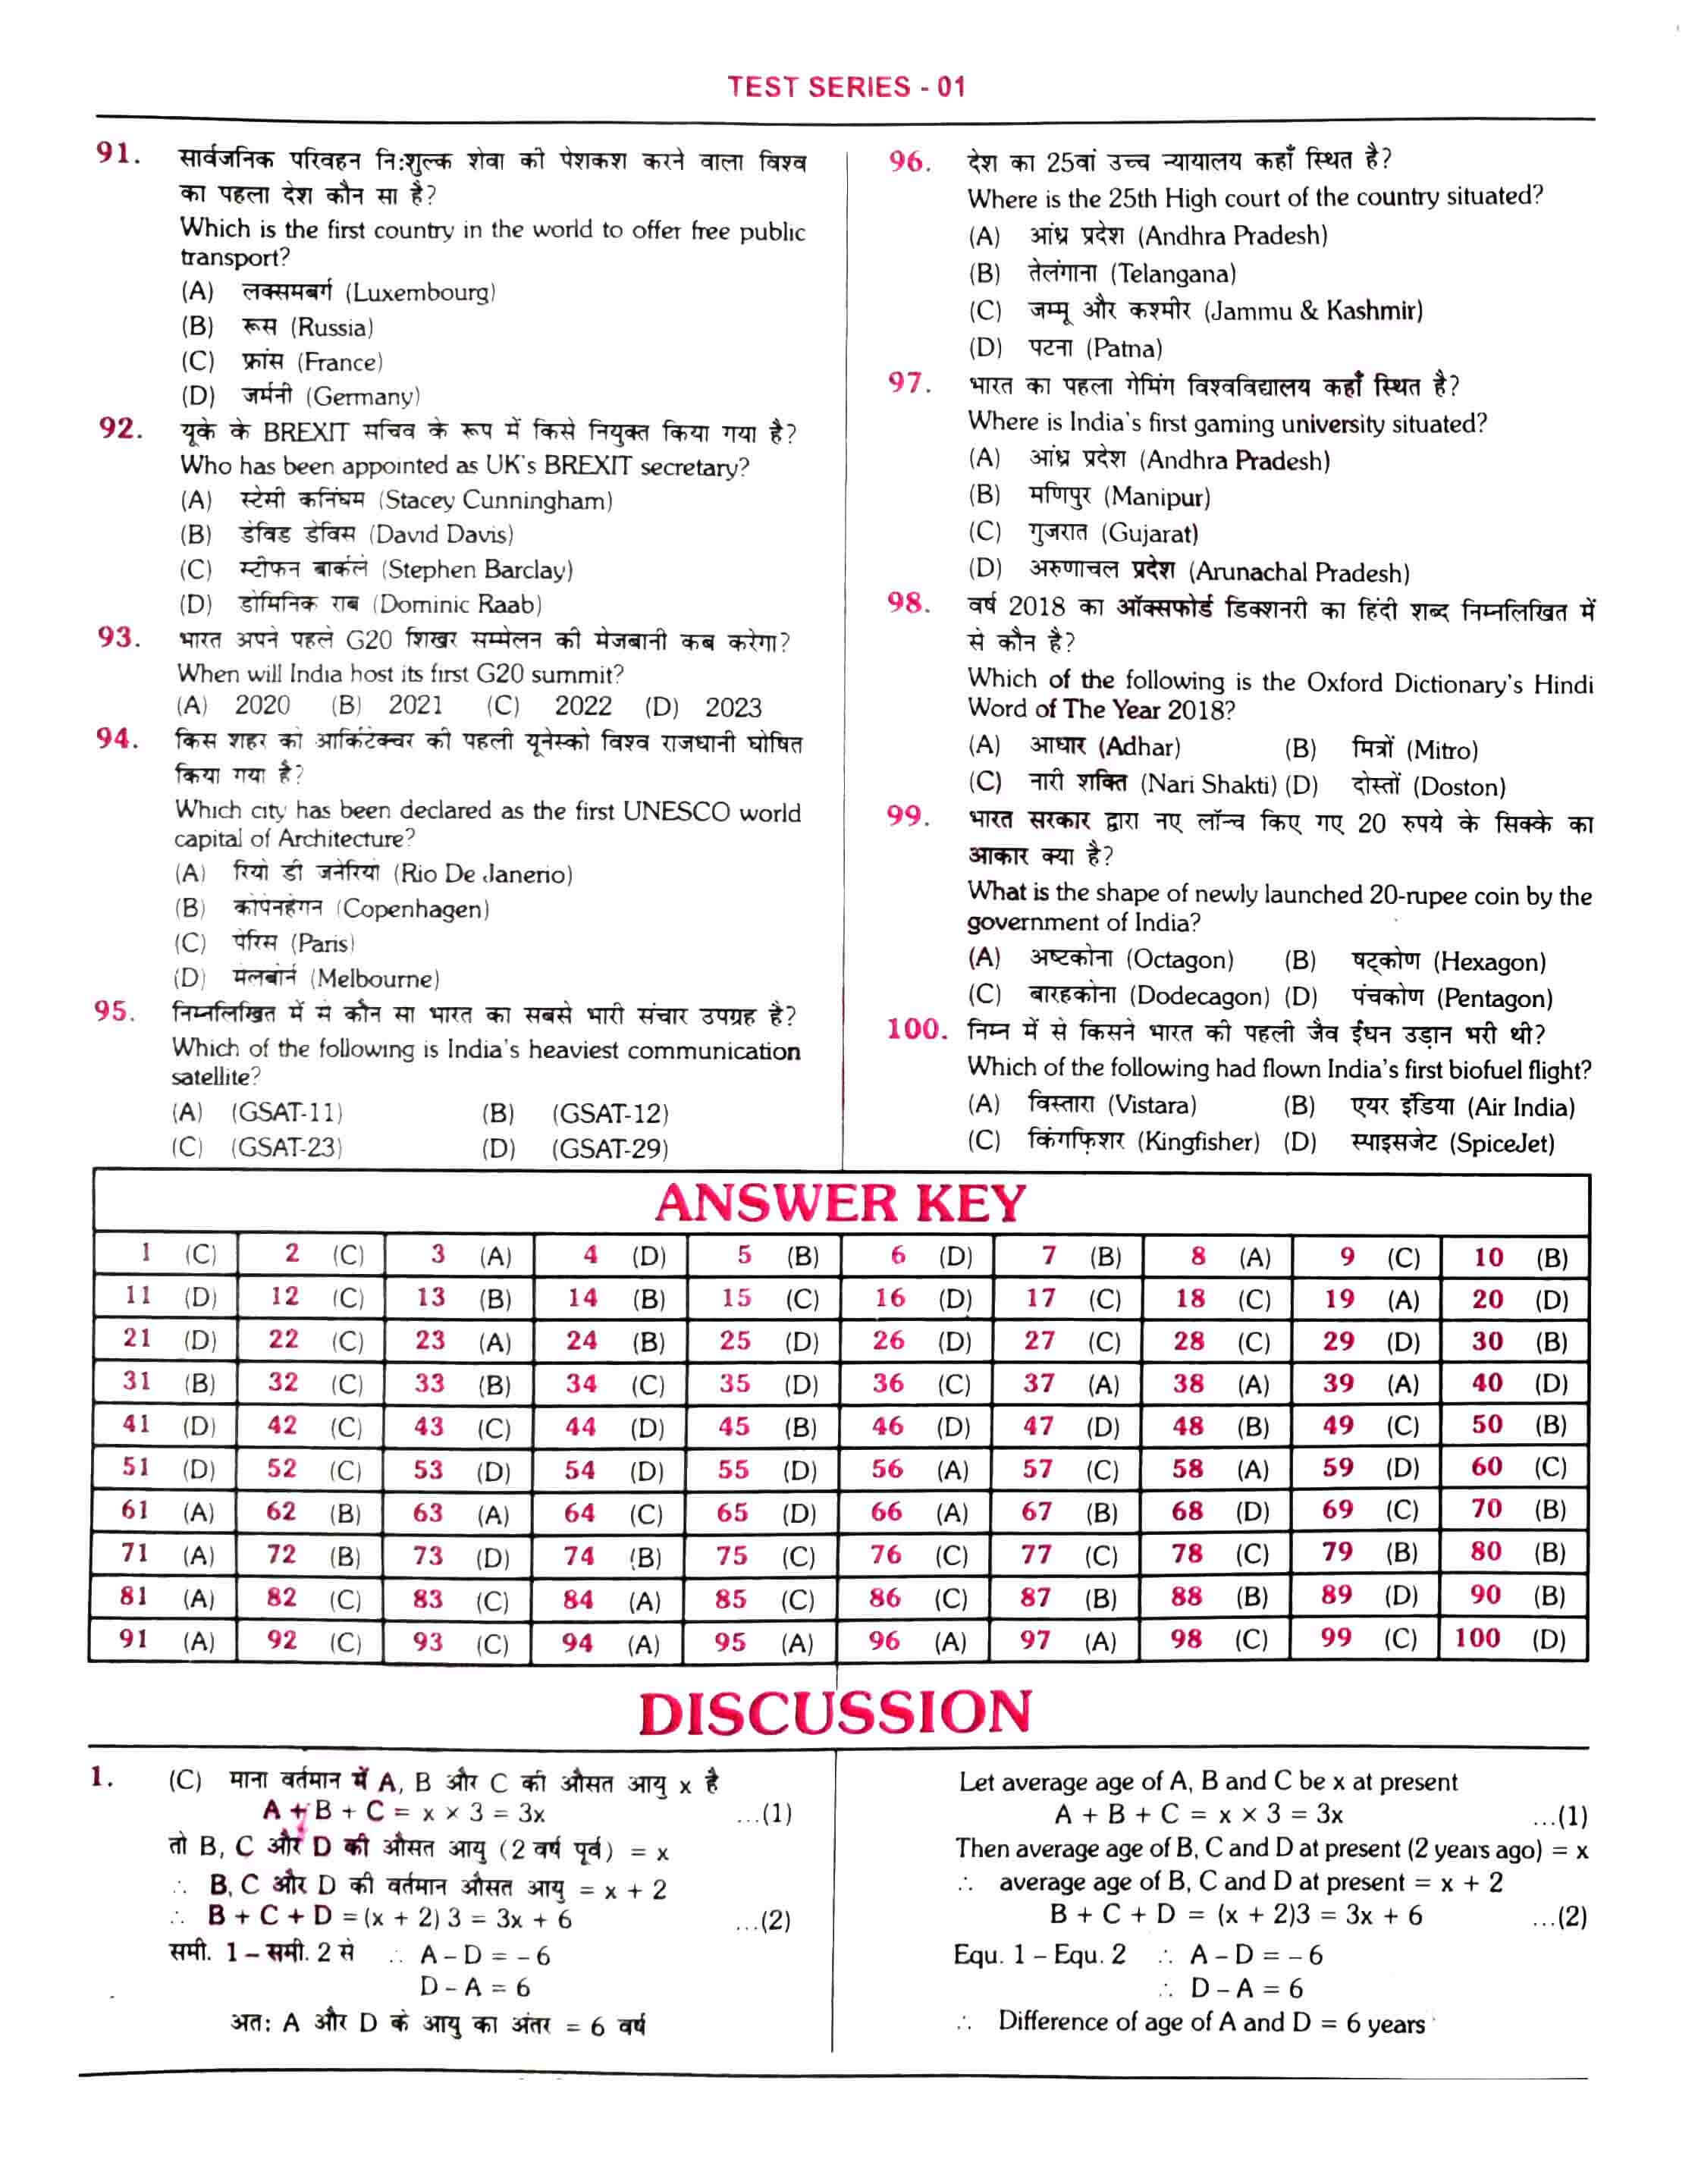 RRB NTPC Question Paper 2021 page 8